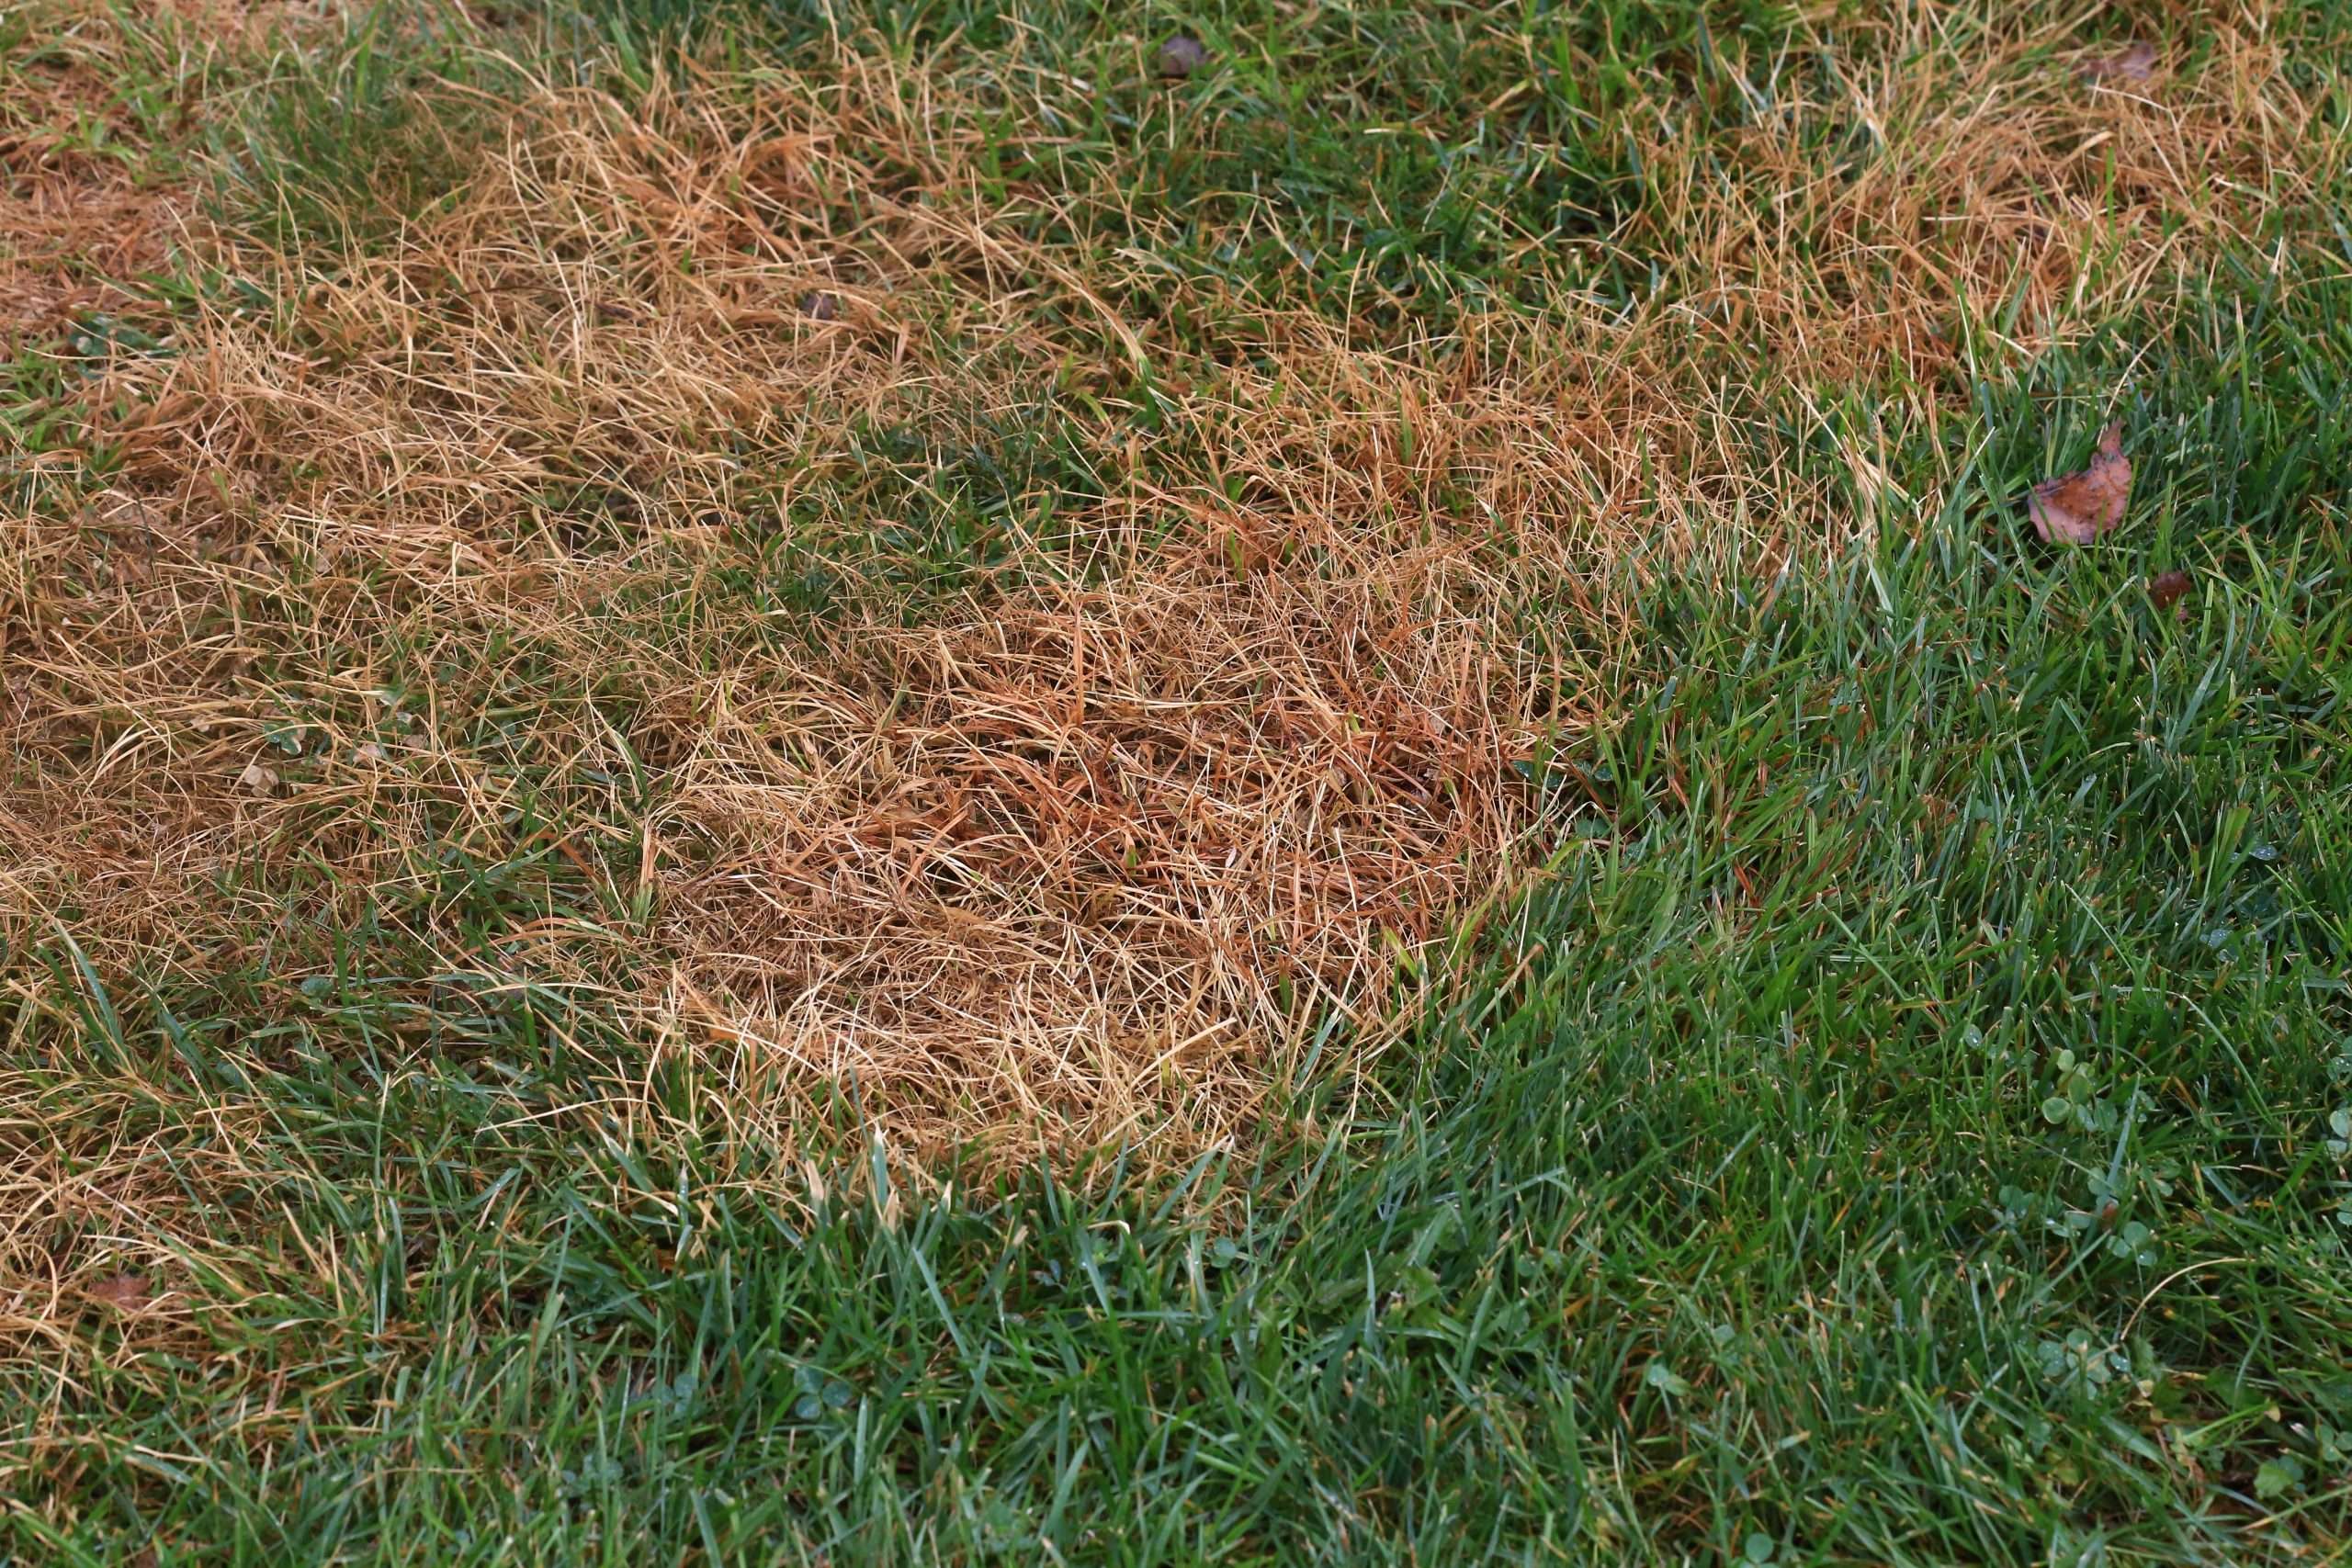 Why are there Brown Spots in my Lawn?